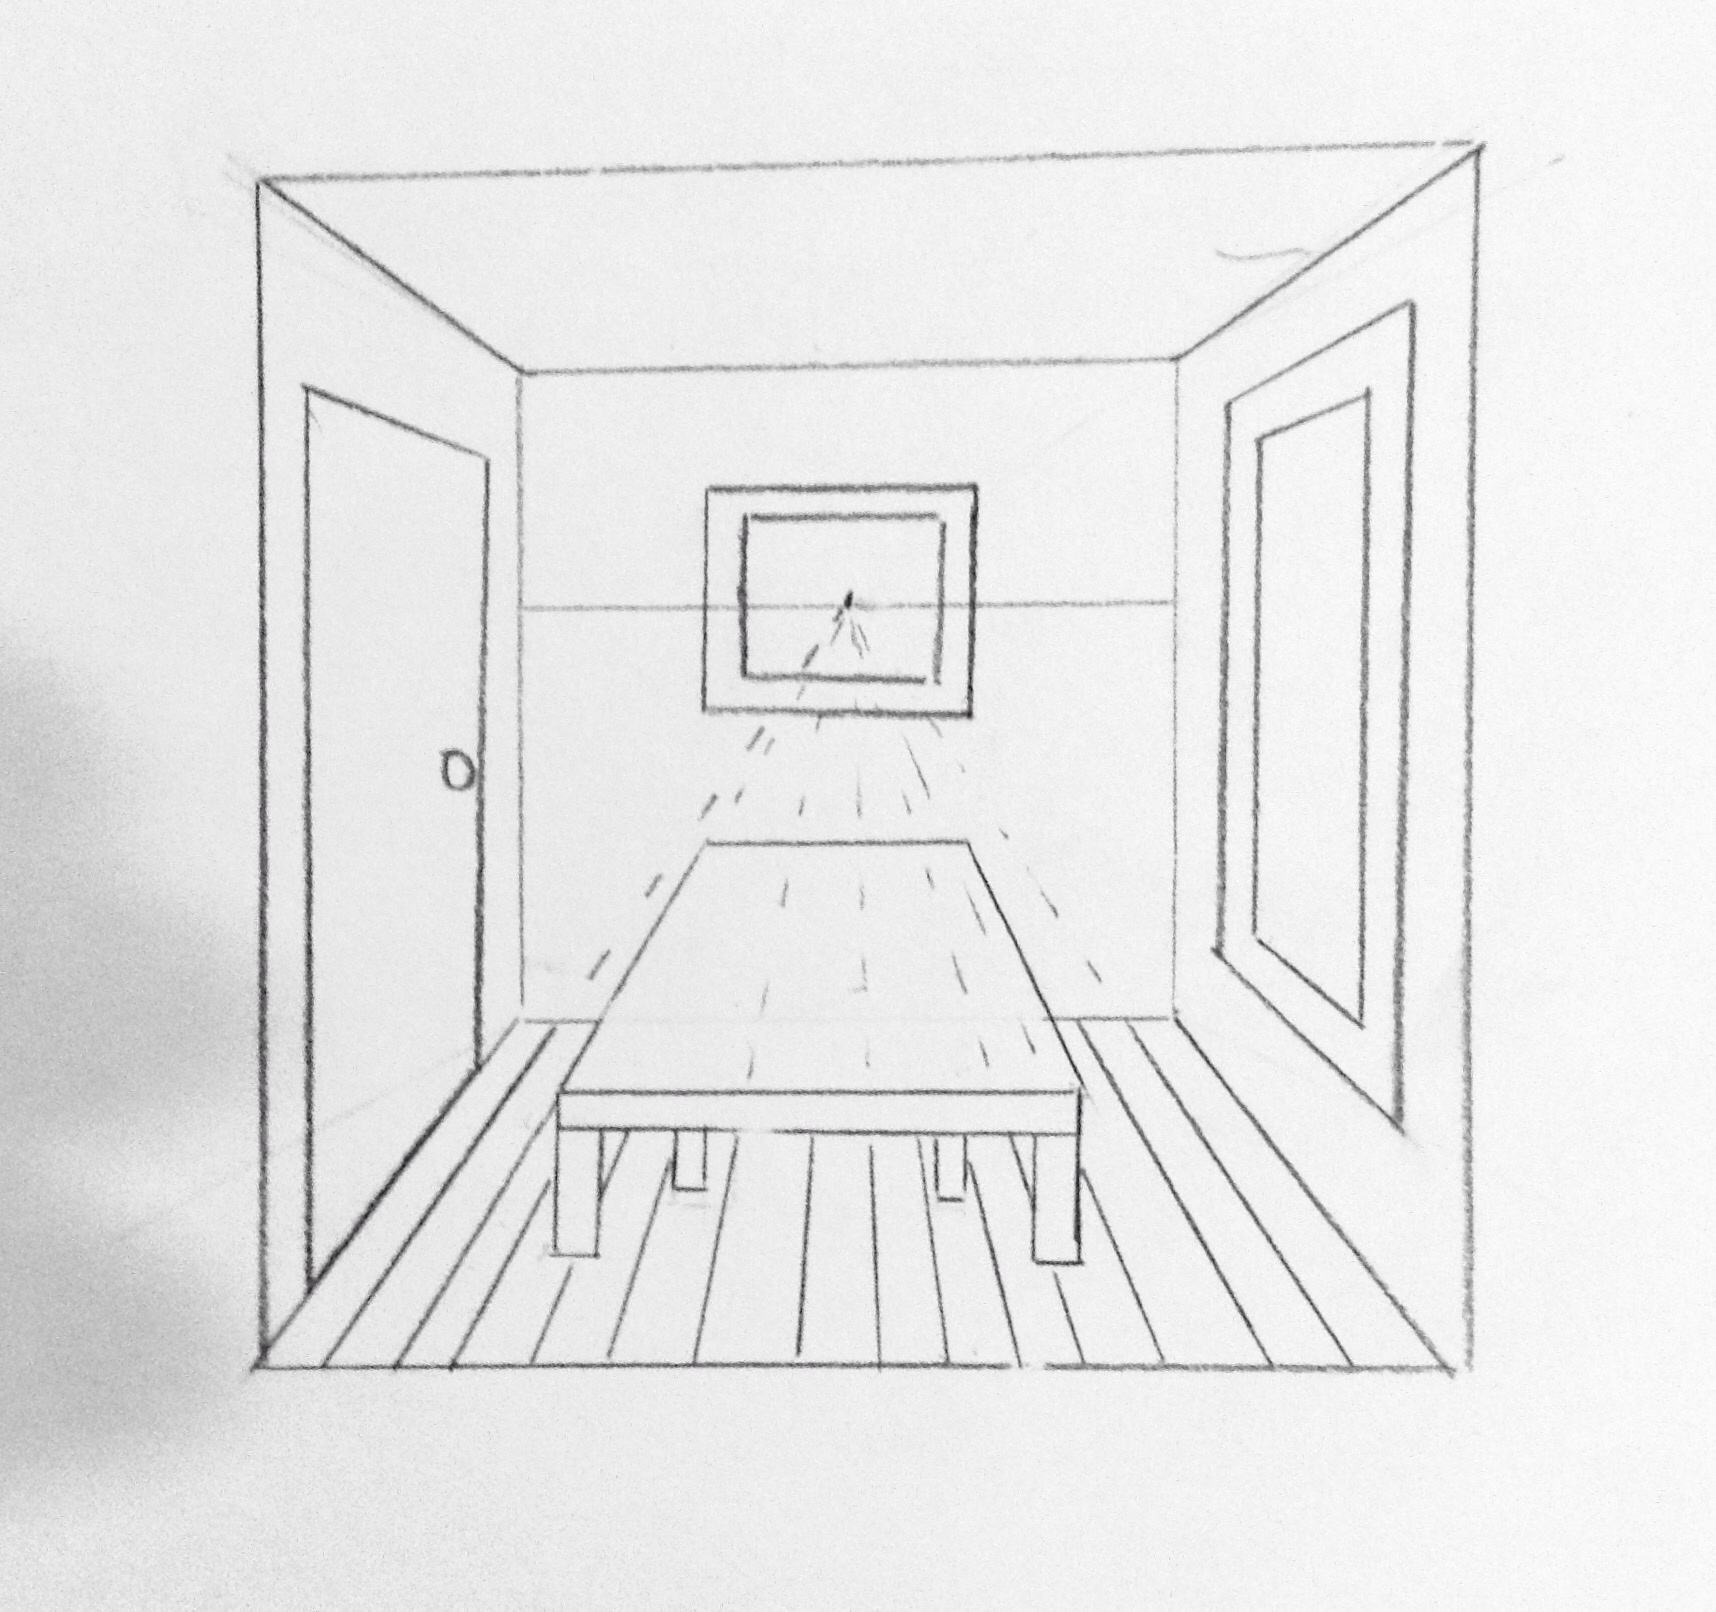 1 Point Perspective Room With Table